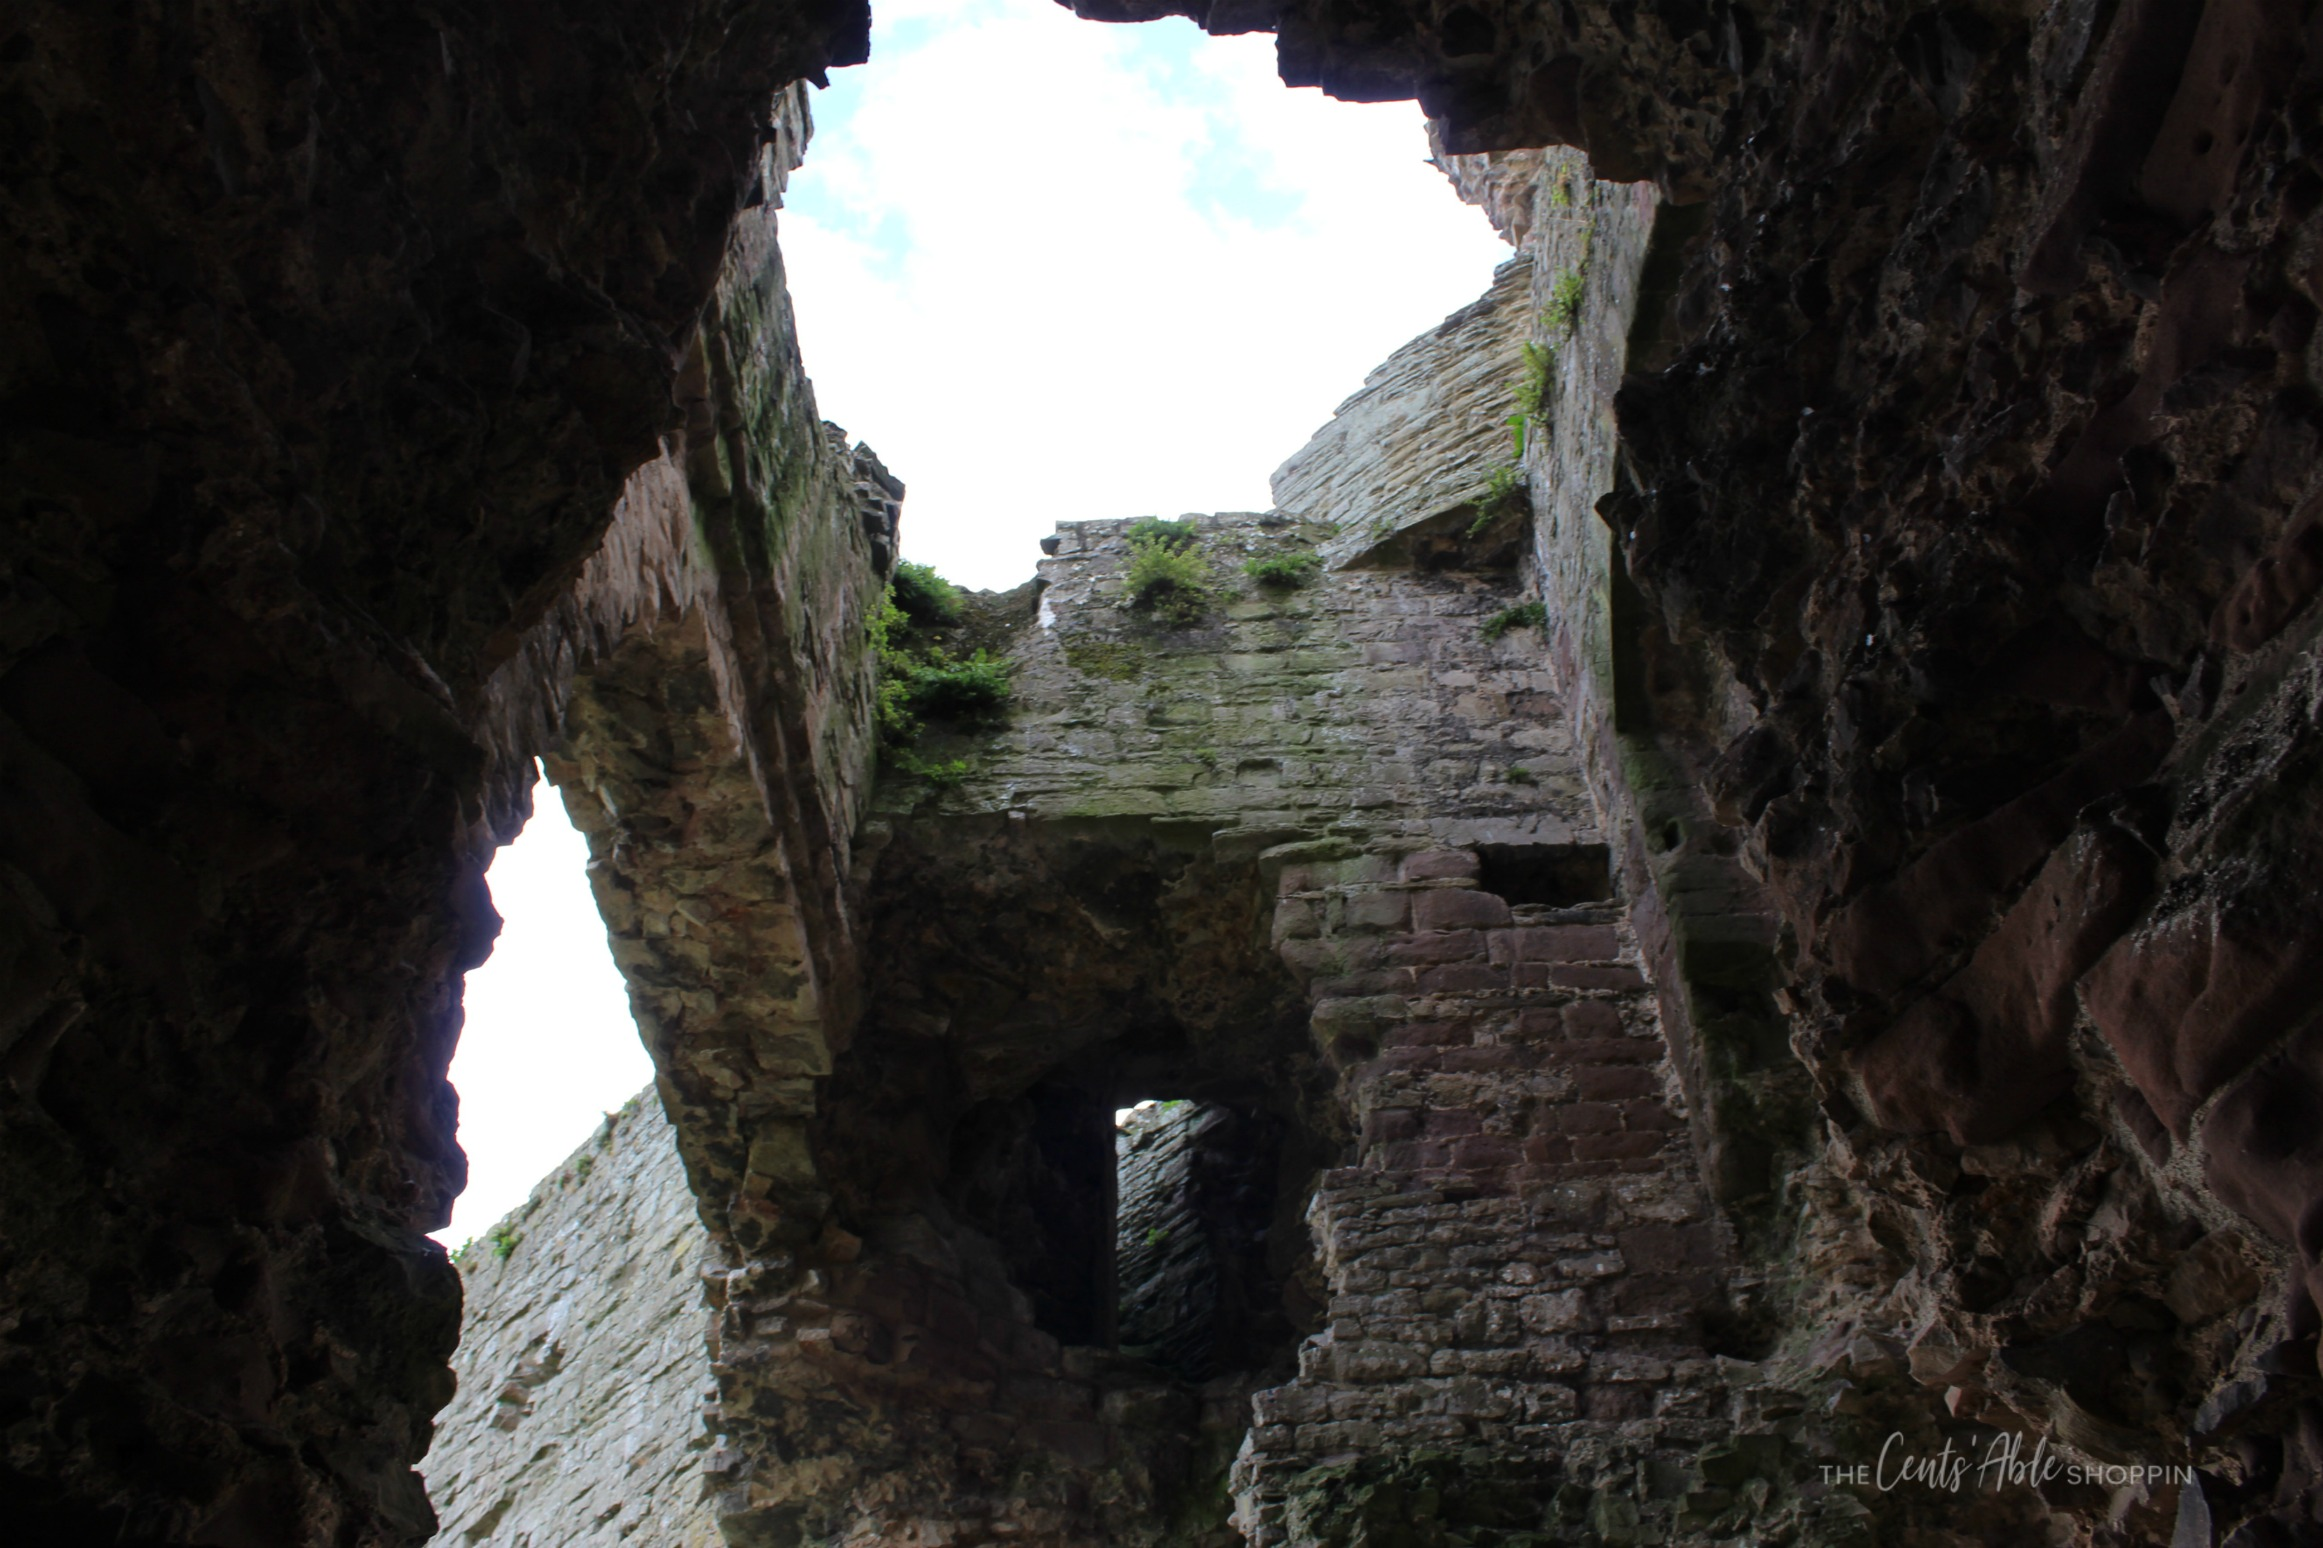 Looking up \\ Rhuddlan Castle is a castle located in Rhuddlan, Denbighshire, Wales. It was one of a series of castles erected by King Edward I in 1277.